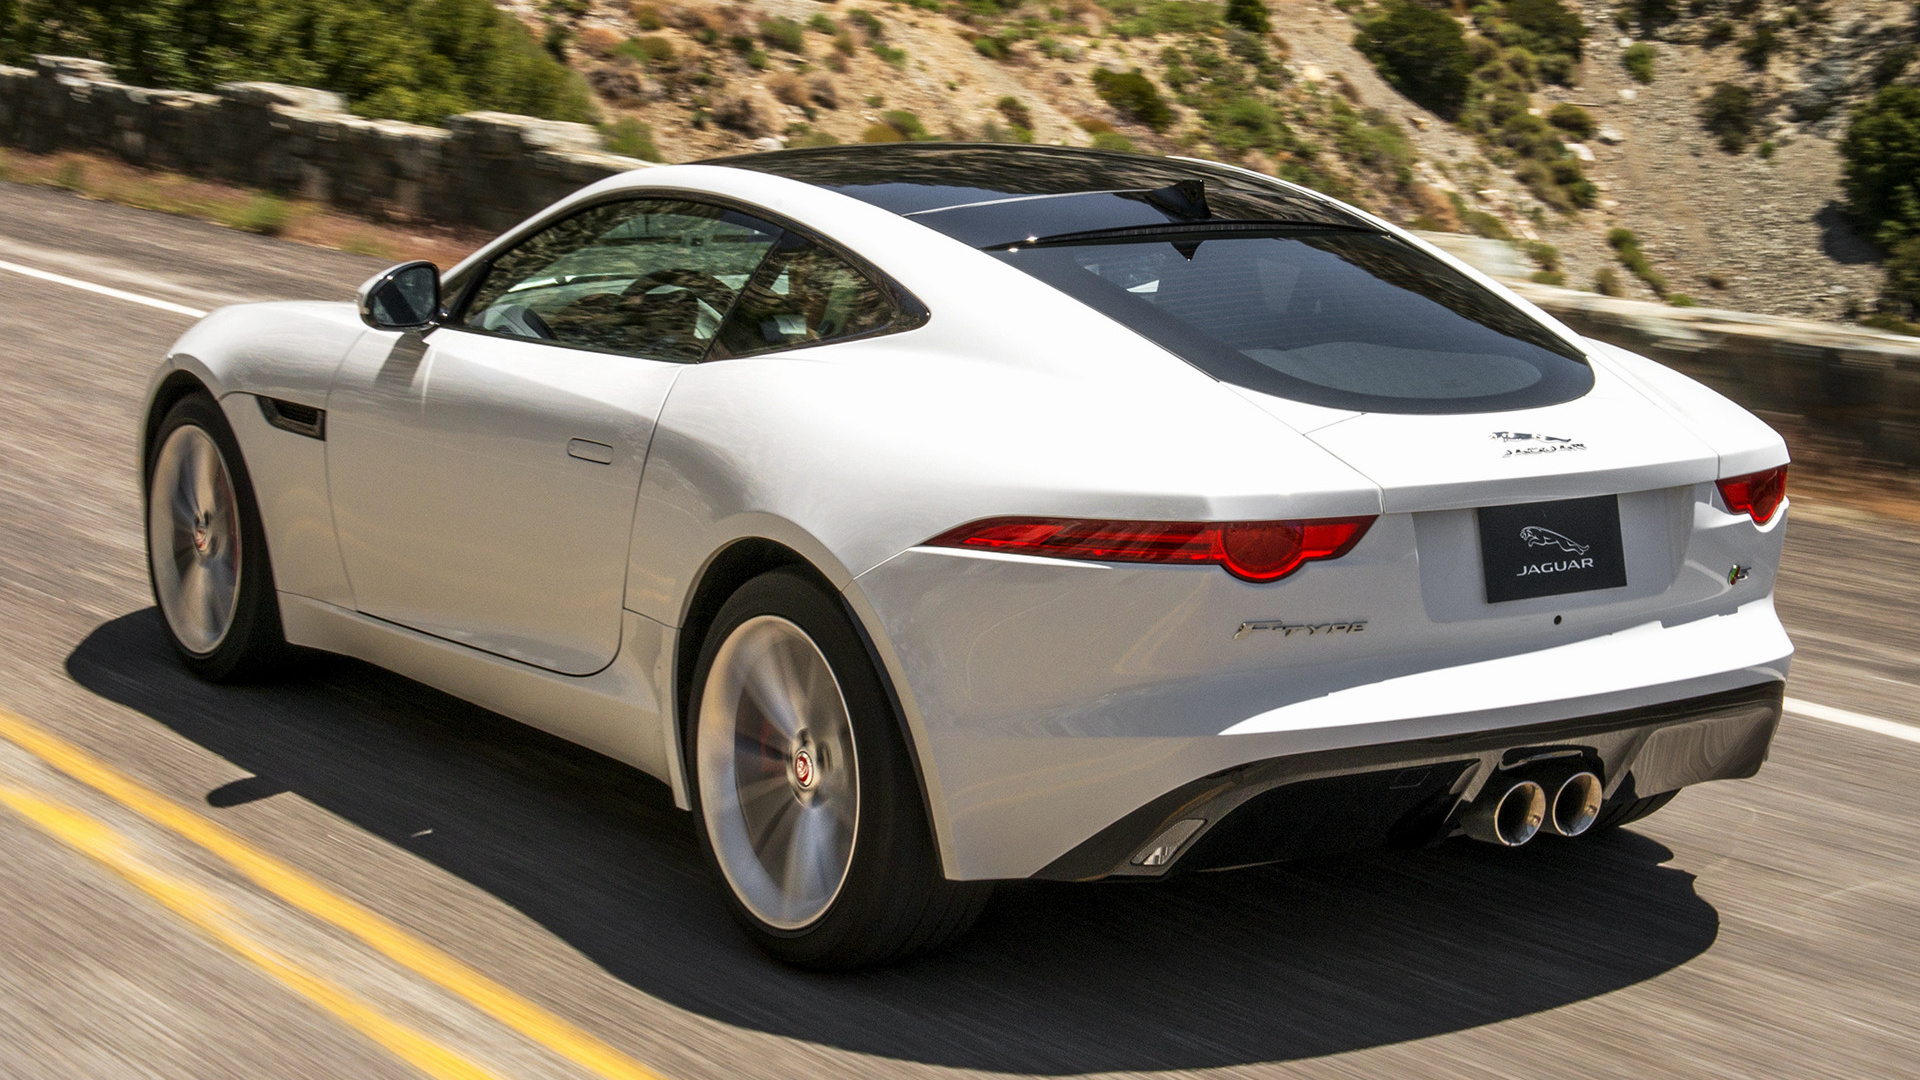 Lamborghini Cars Wallpapers 2013 Jaguar F Type S Coupe 2015 Us Wallpapers And Hd Images